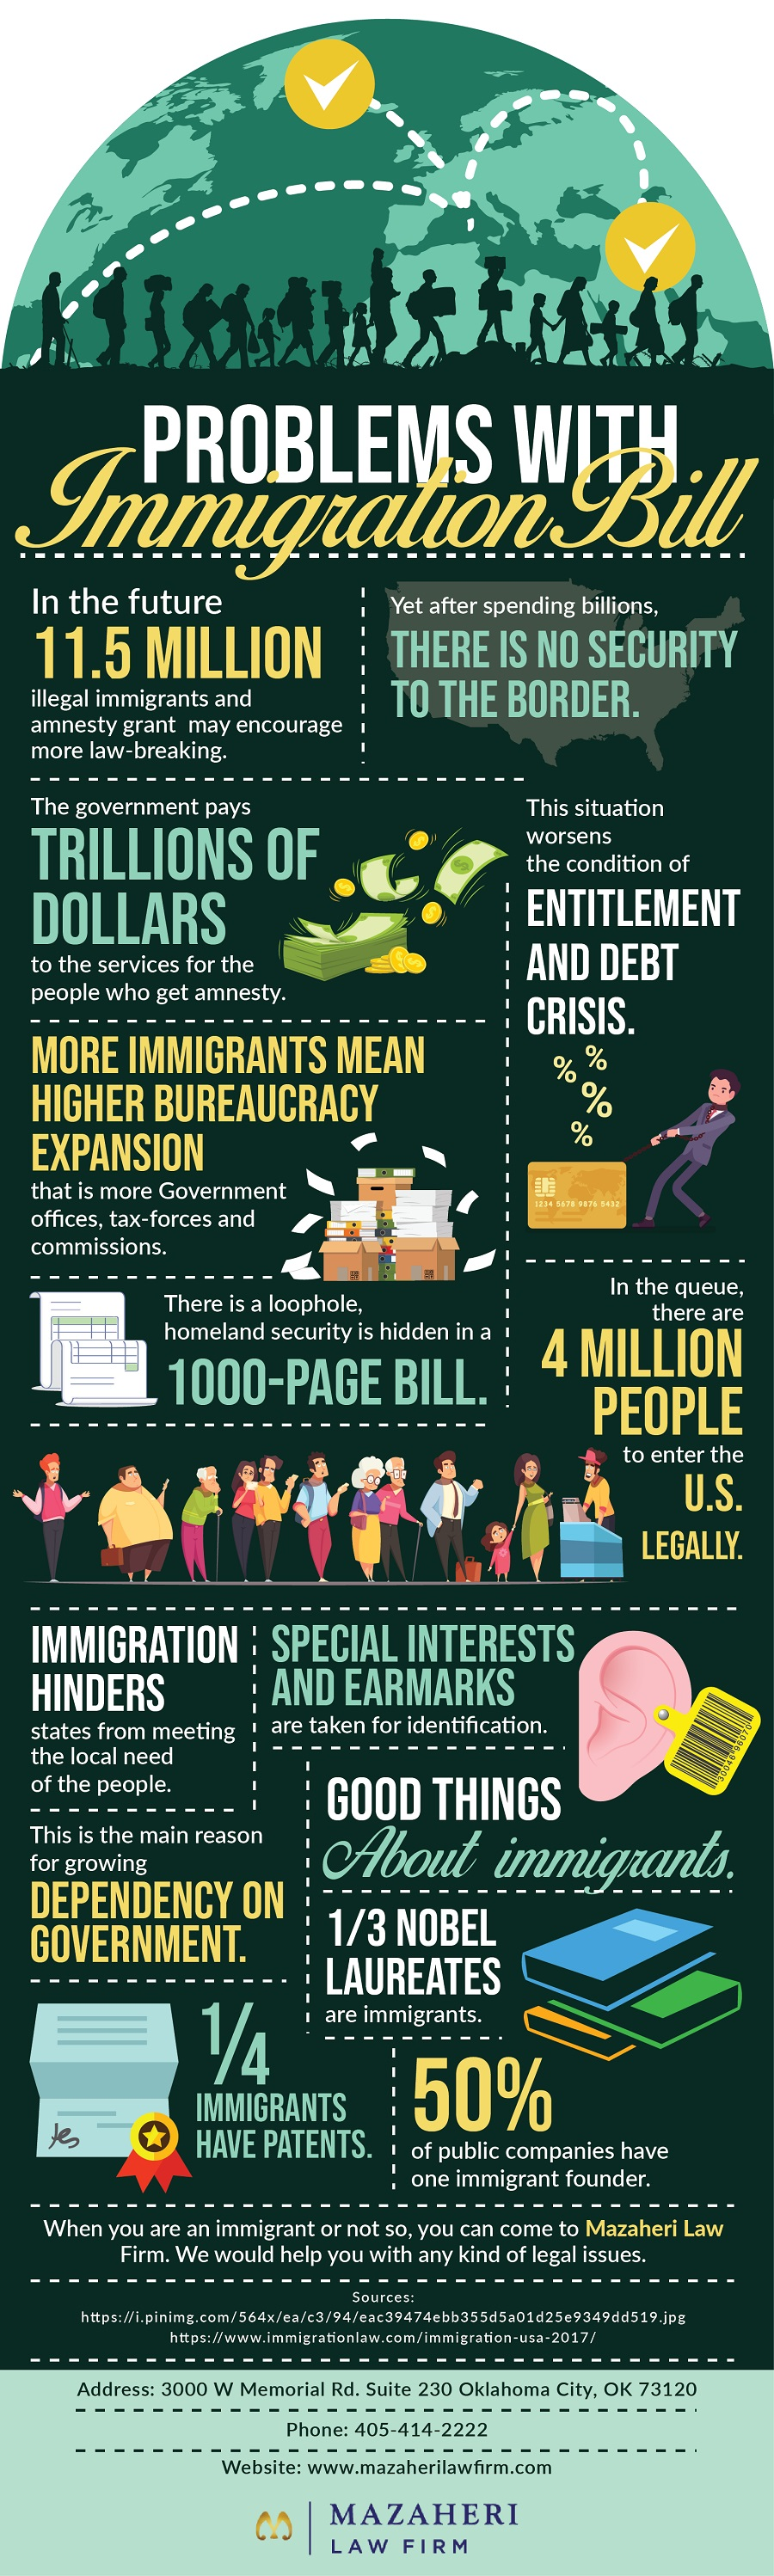 Problems With Immigration Bill